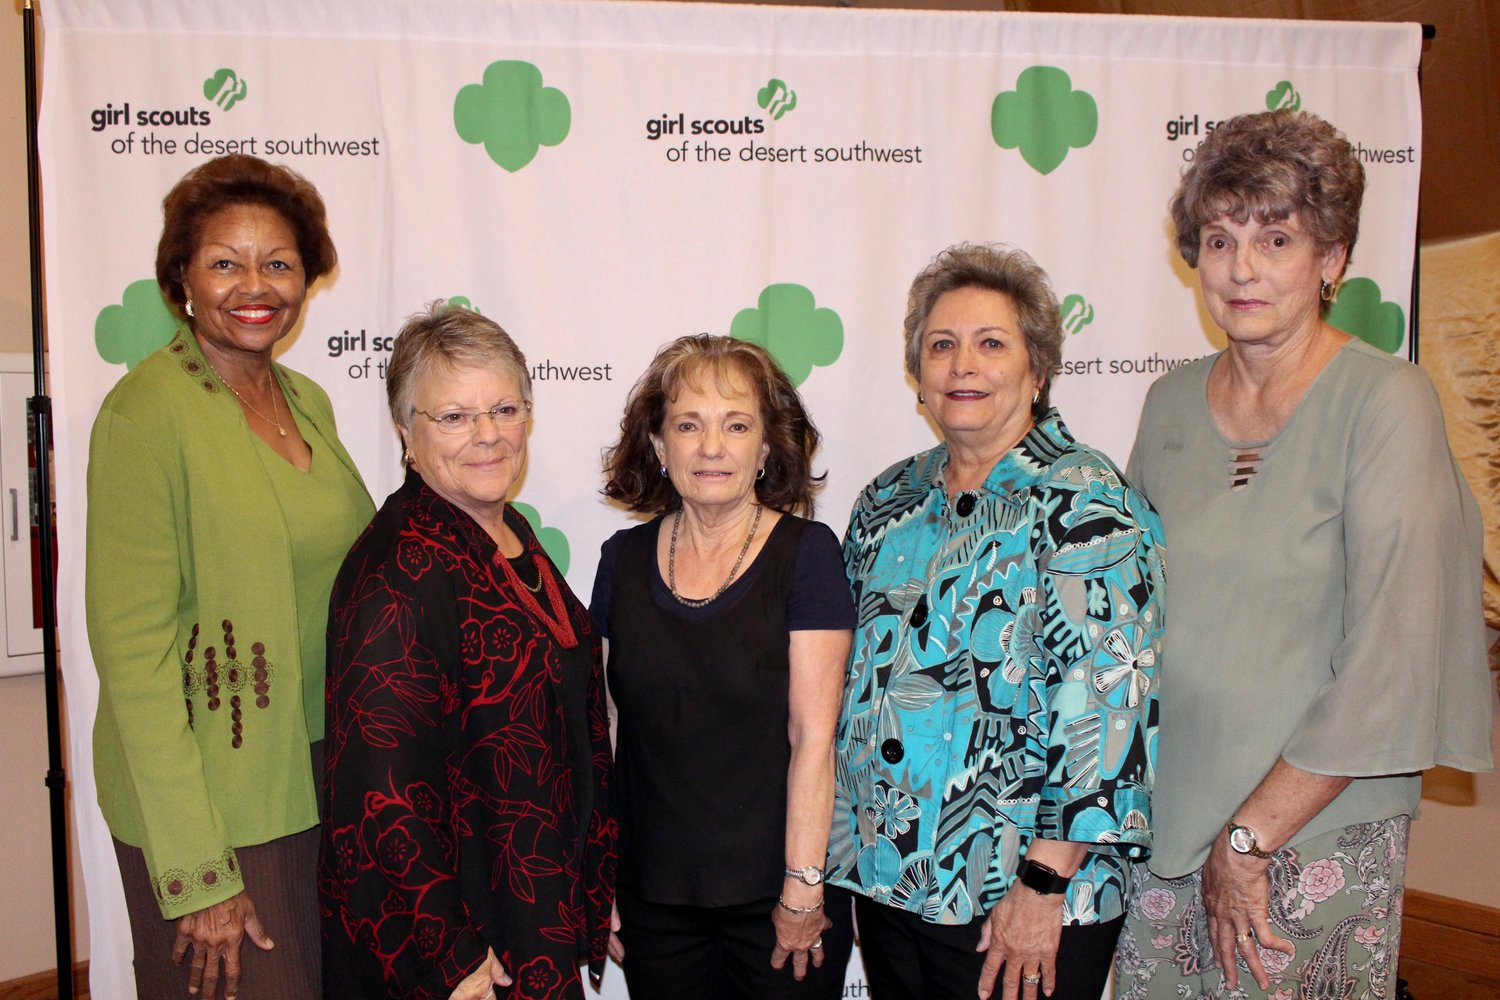 This year's Women of Distinction, selected by the Girl Scouts of the Desert Southwest, are Julia Brown, Kay Brilliant, Jean Gilbert, Ana Mangino and Mary Lou Brown. They were honored at a luncheon Sept. 17 at the New Mexico Farm & Ranch Heritage Museum.